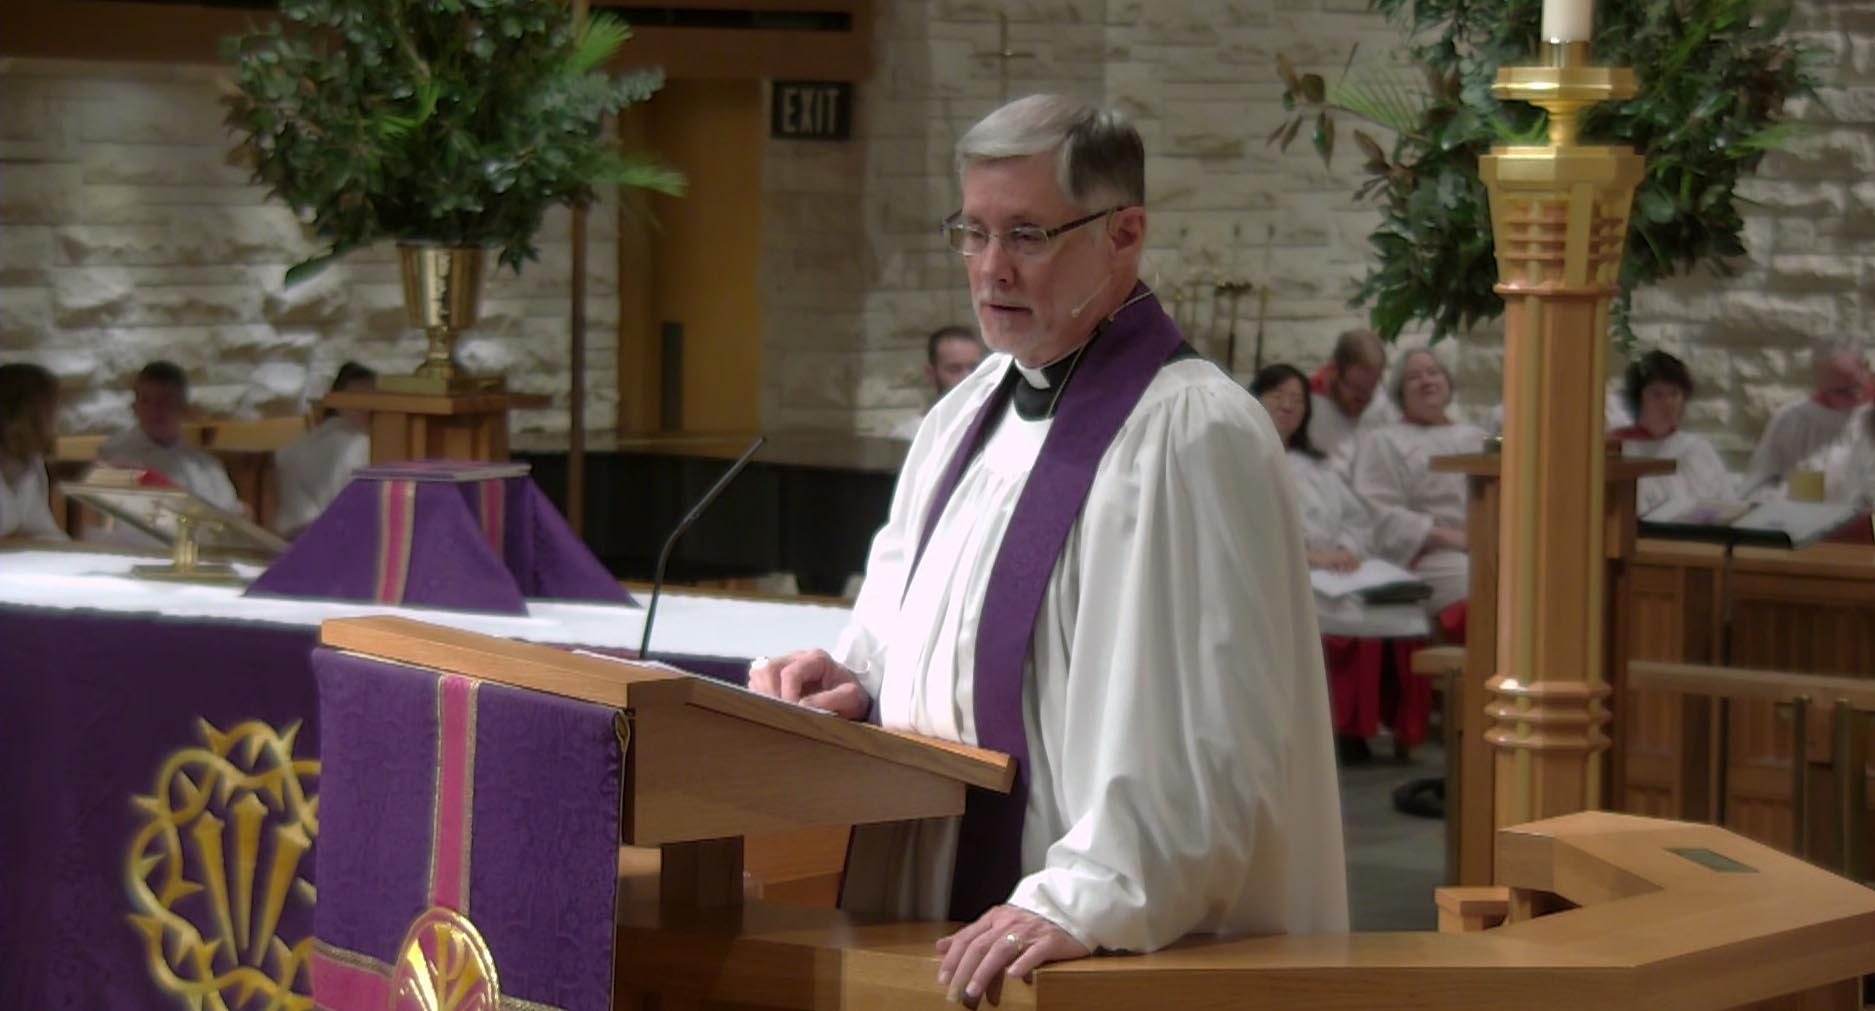 Woman at the Well - Sermon by Bishop Gary Lillibridge